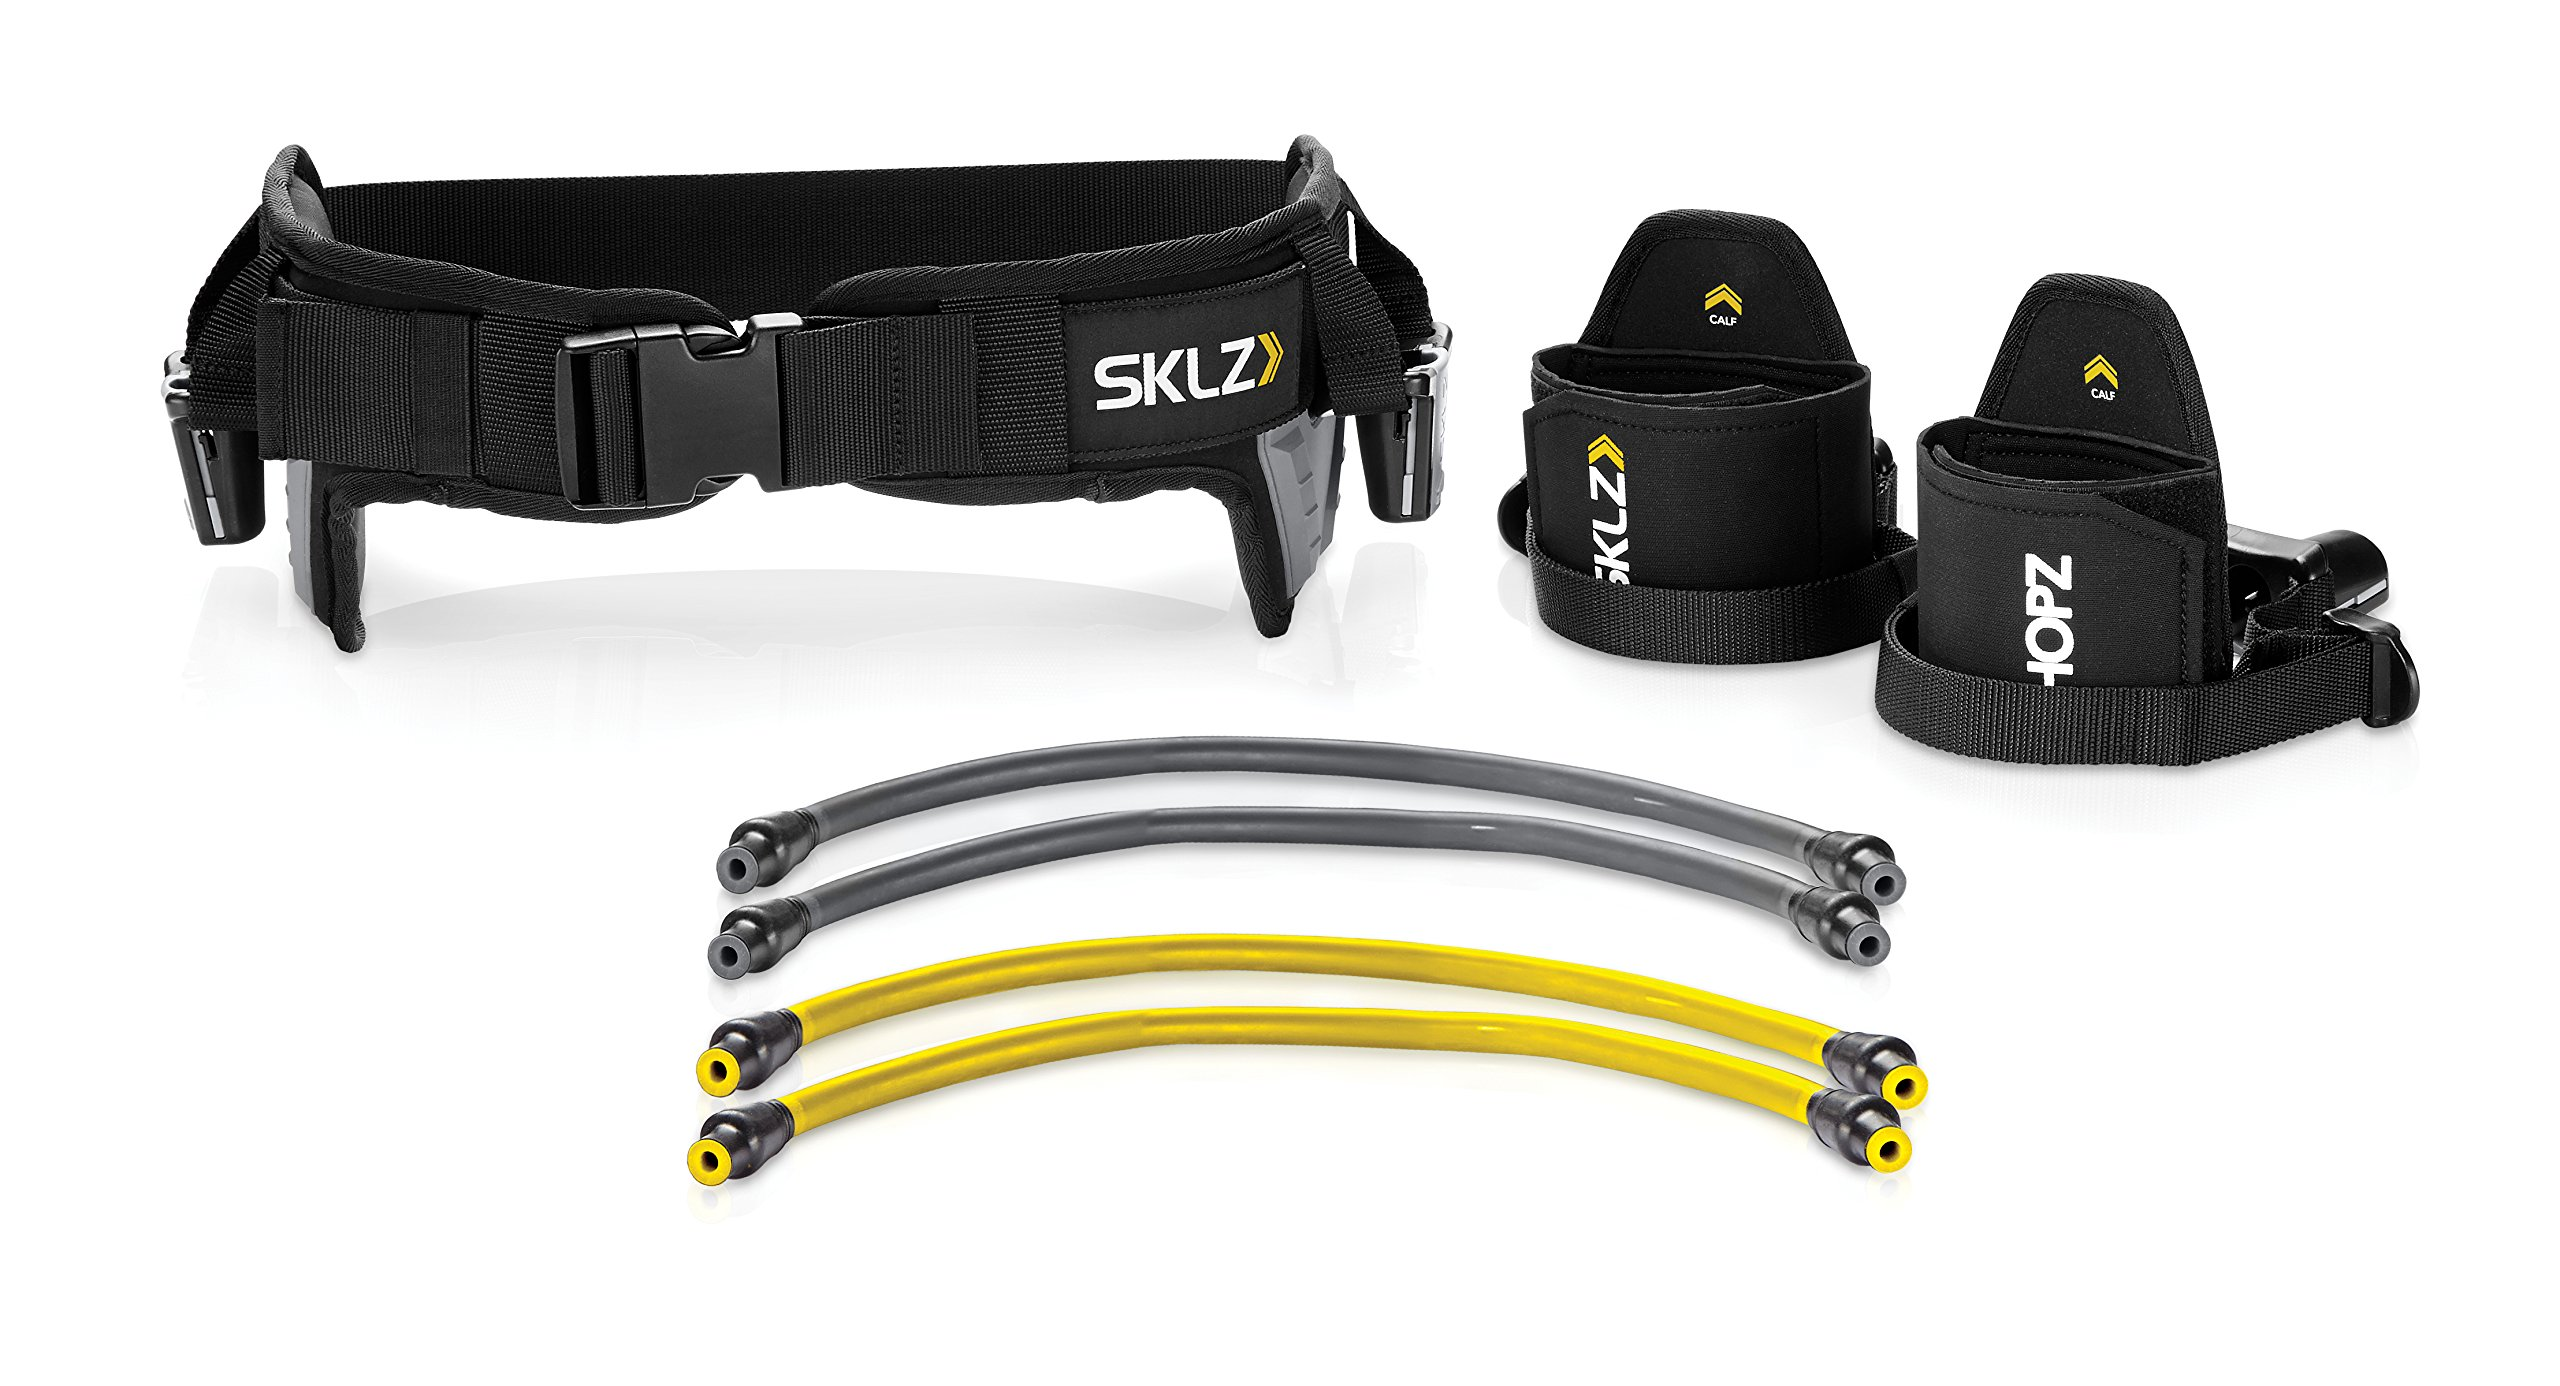 SKLZ HOPZ Straps Vertical Jump Trainer with Belt, Cuffs, and Resistance Bands by SKLZ